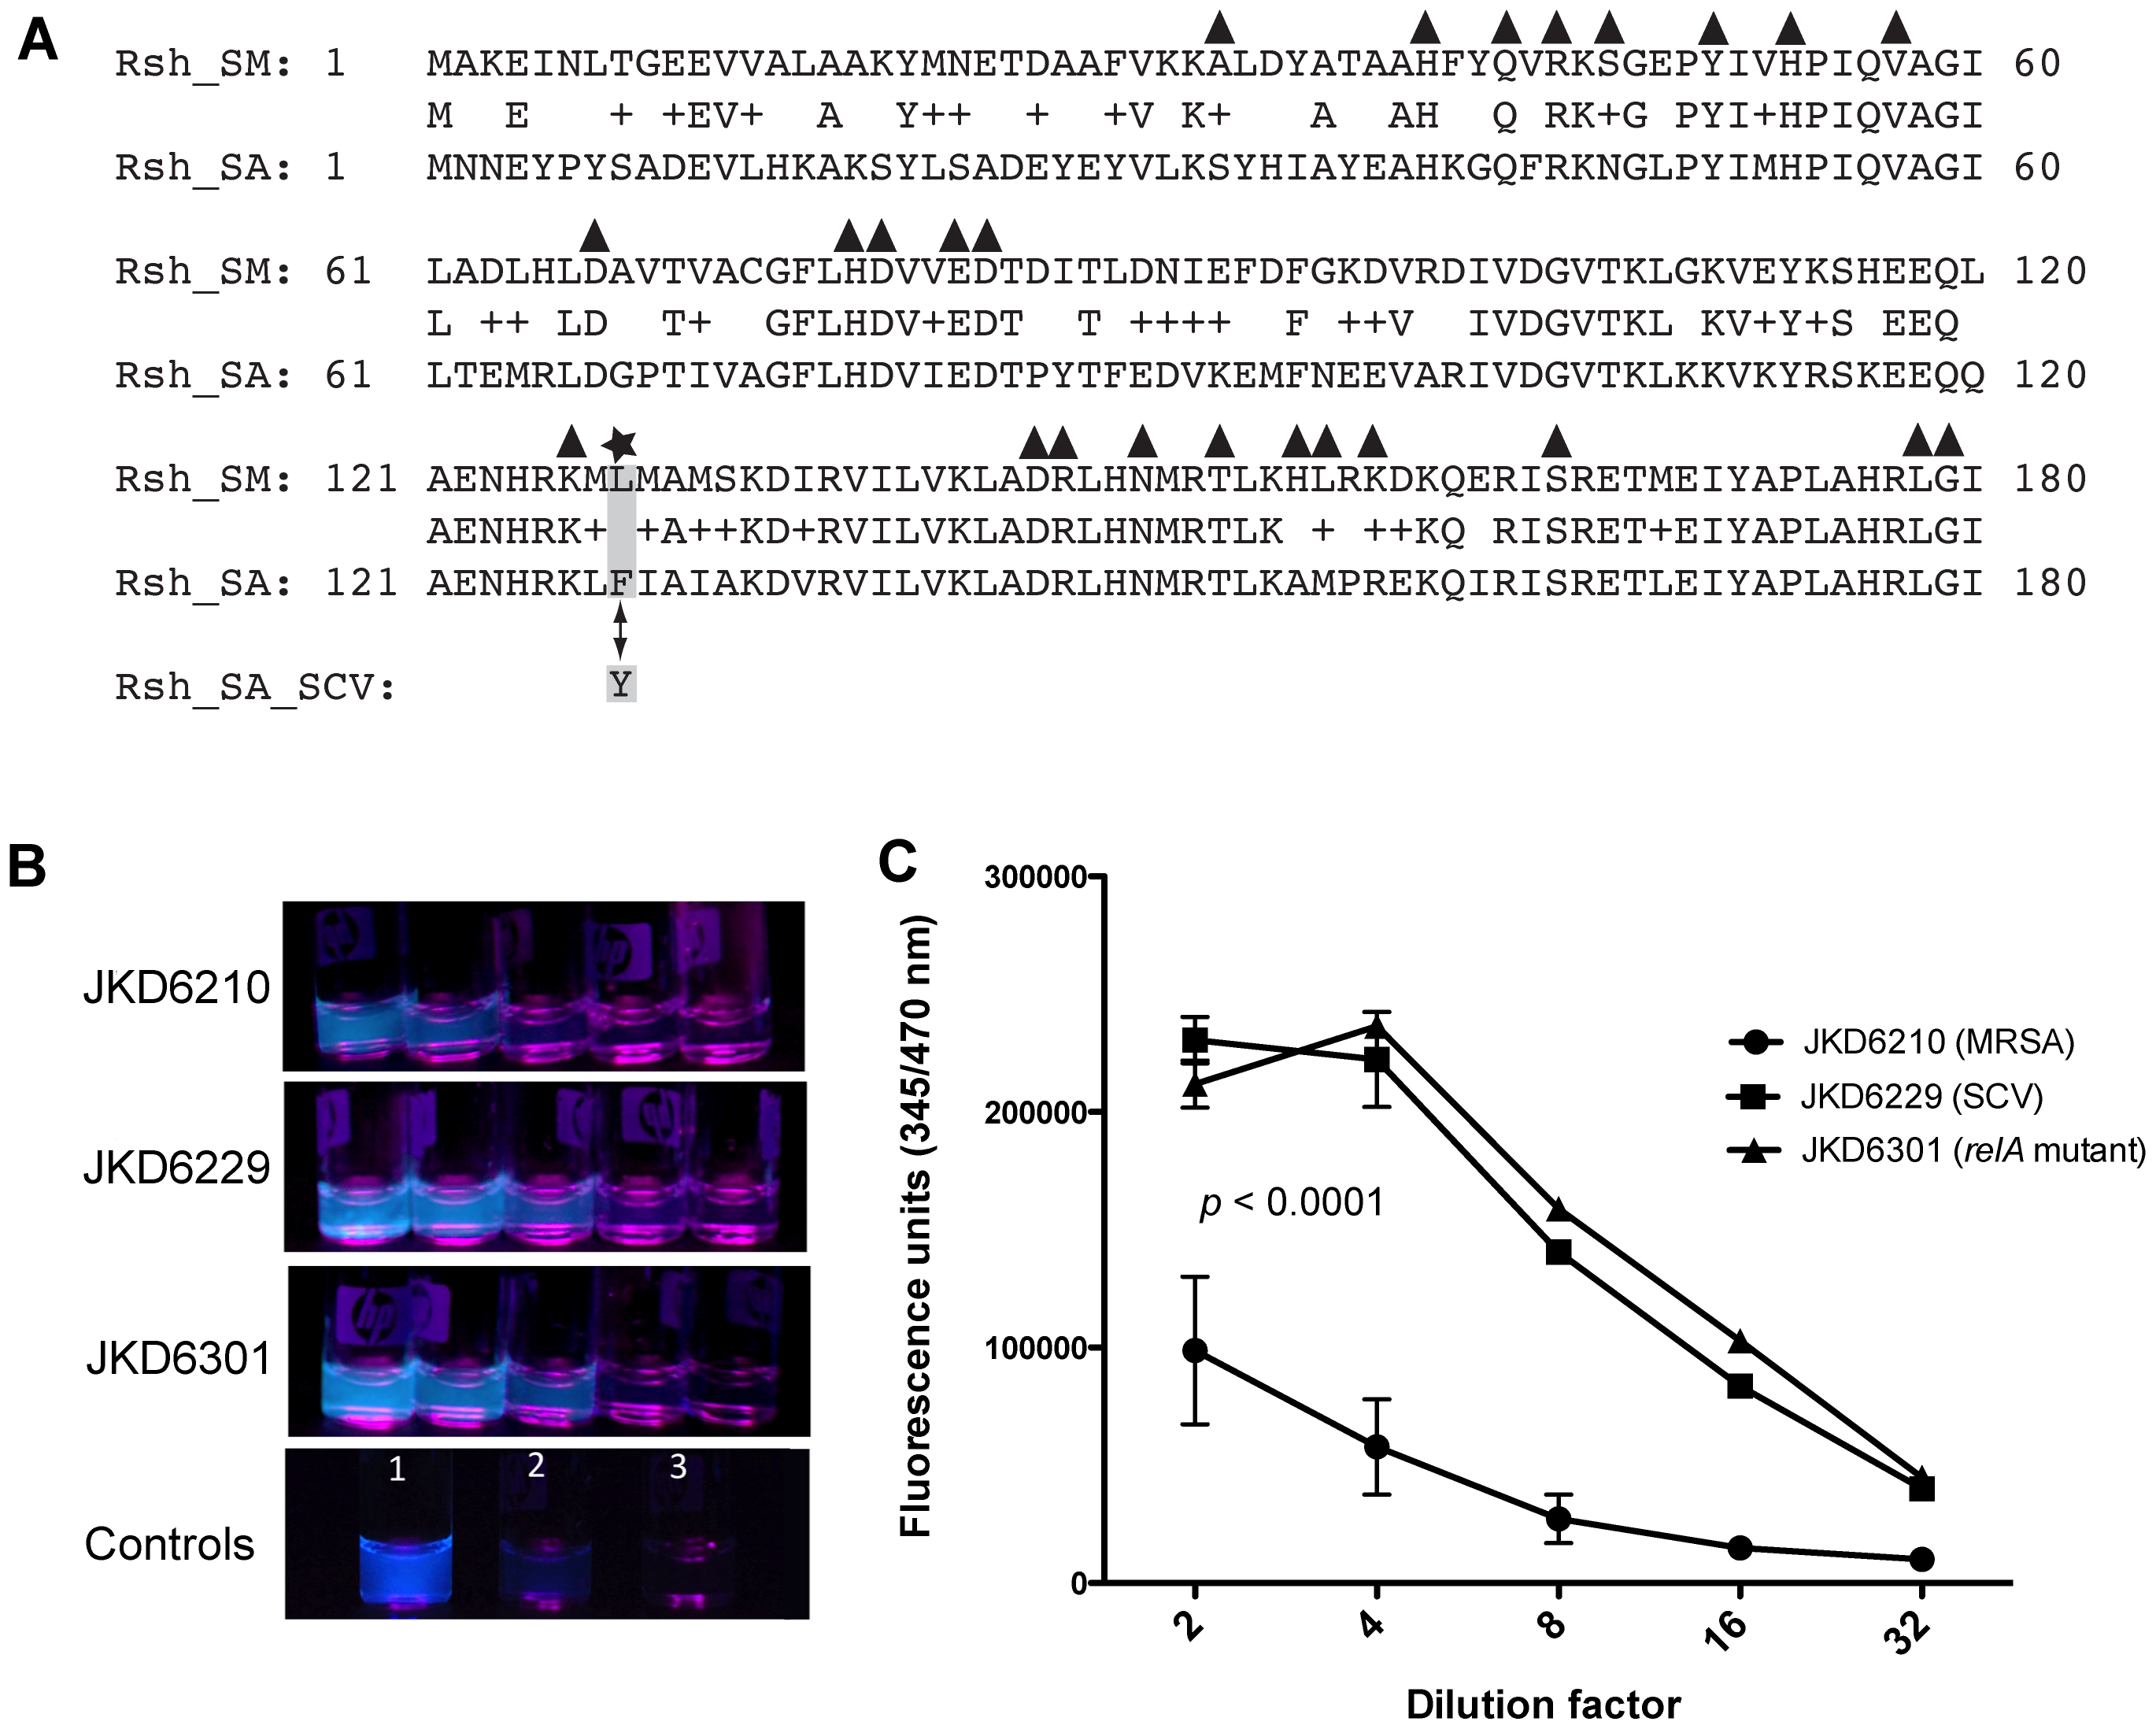 Location of RelA mutation in JKD6229 and impact of the mutation on cellular ppGpp levels.